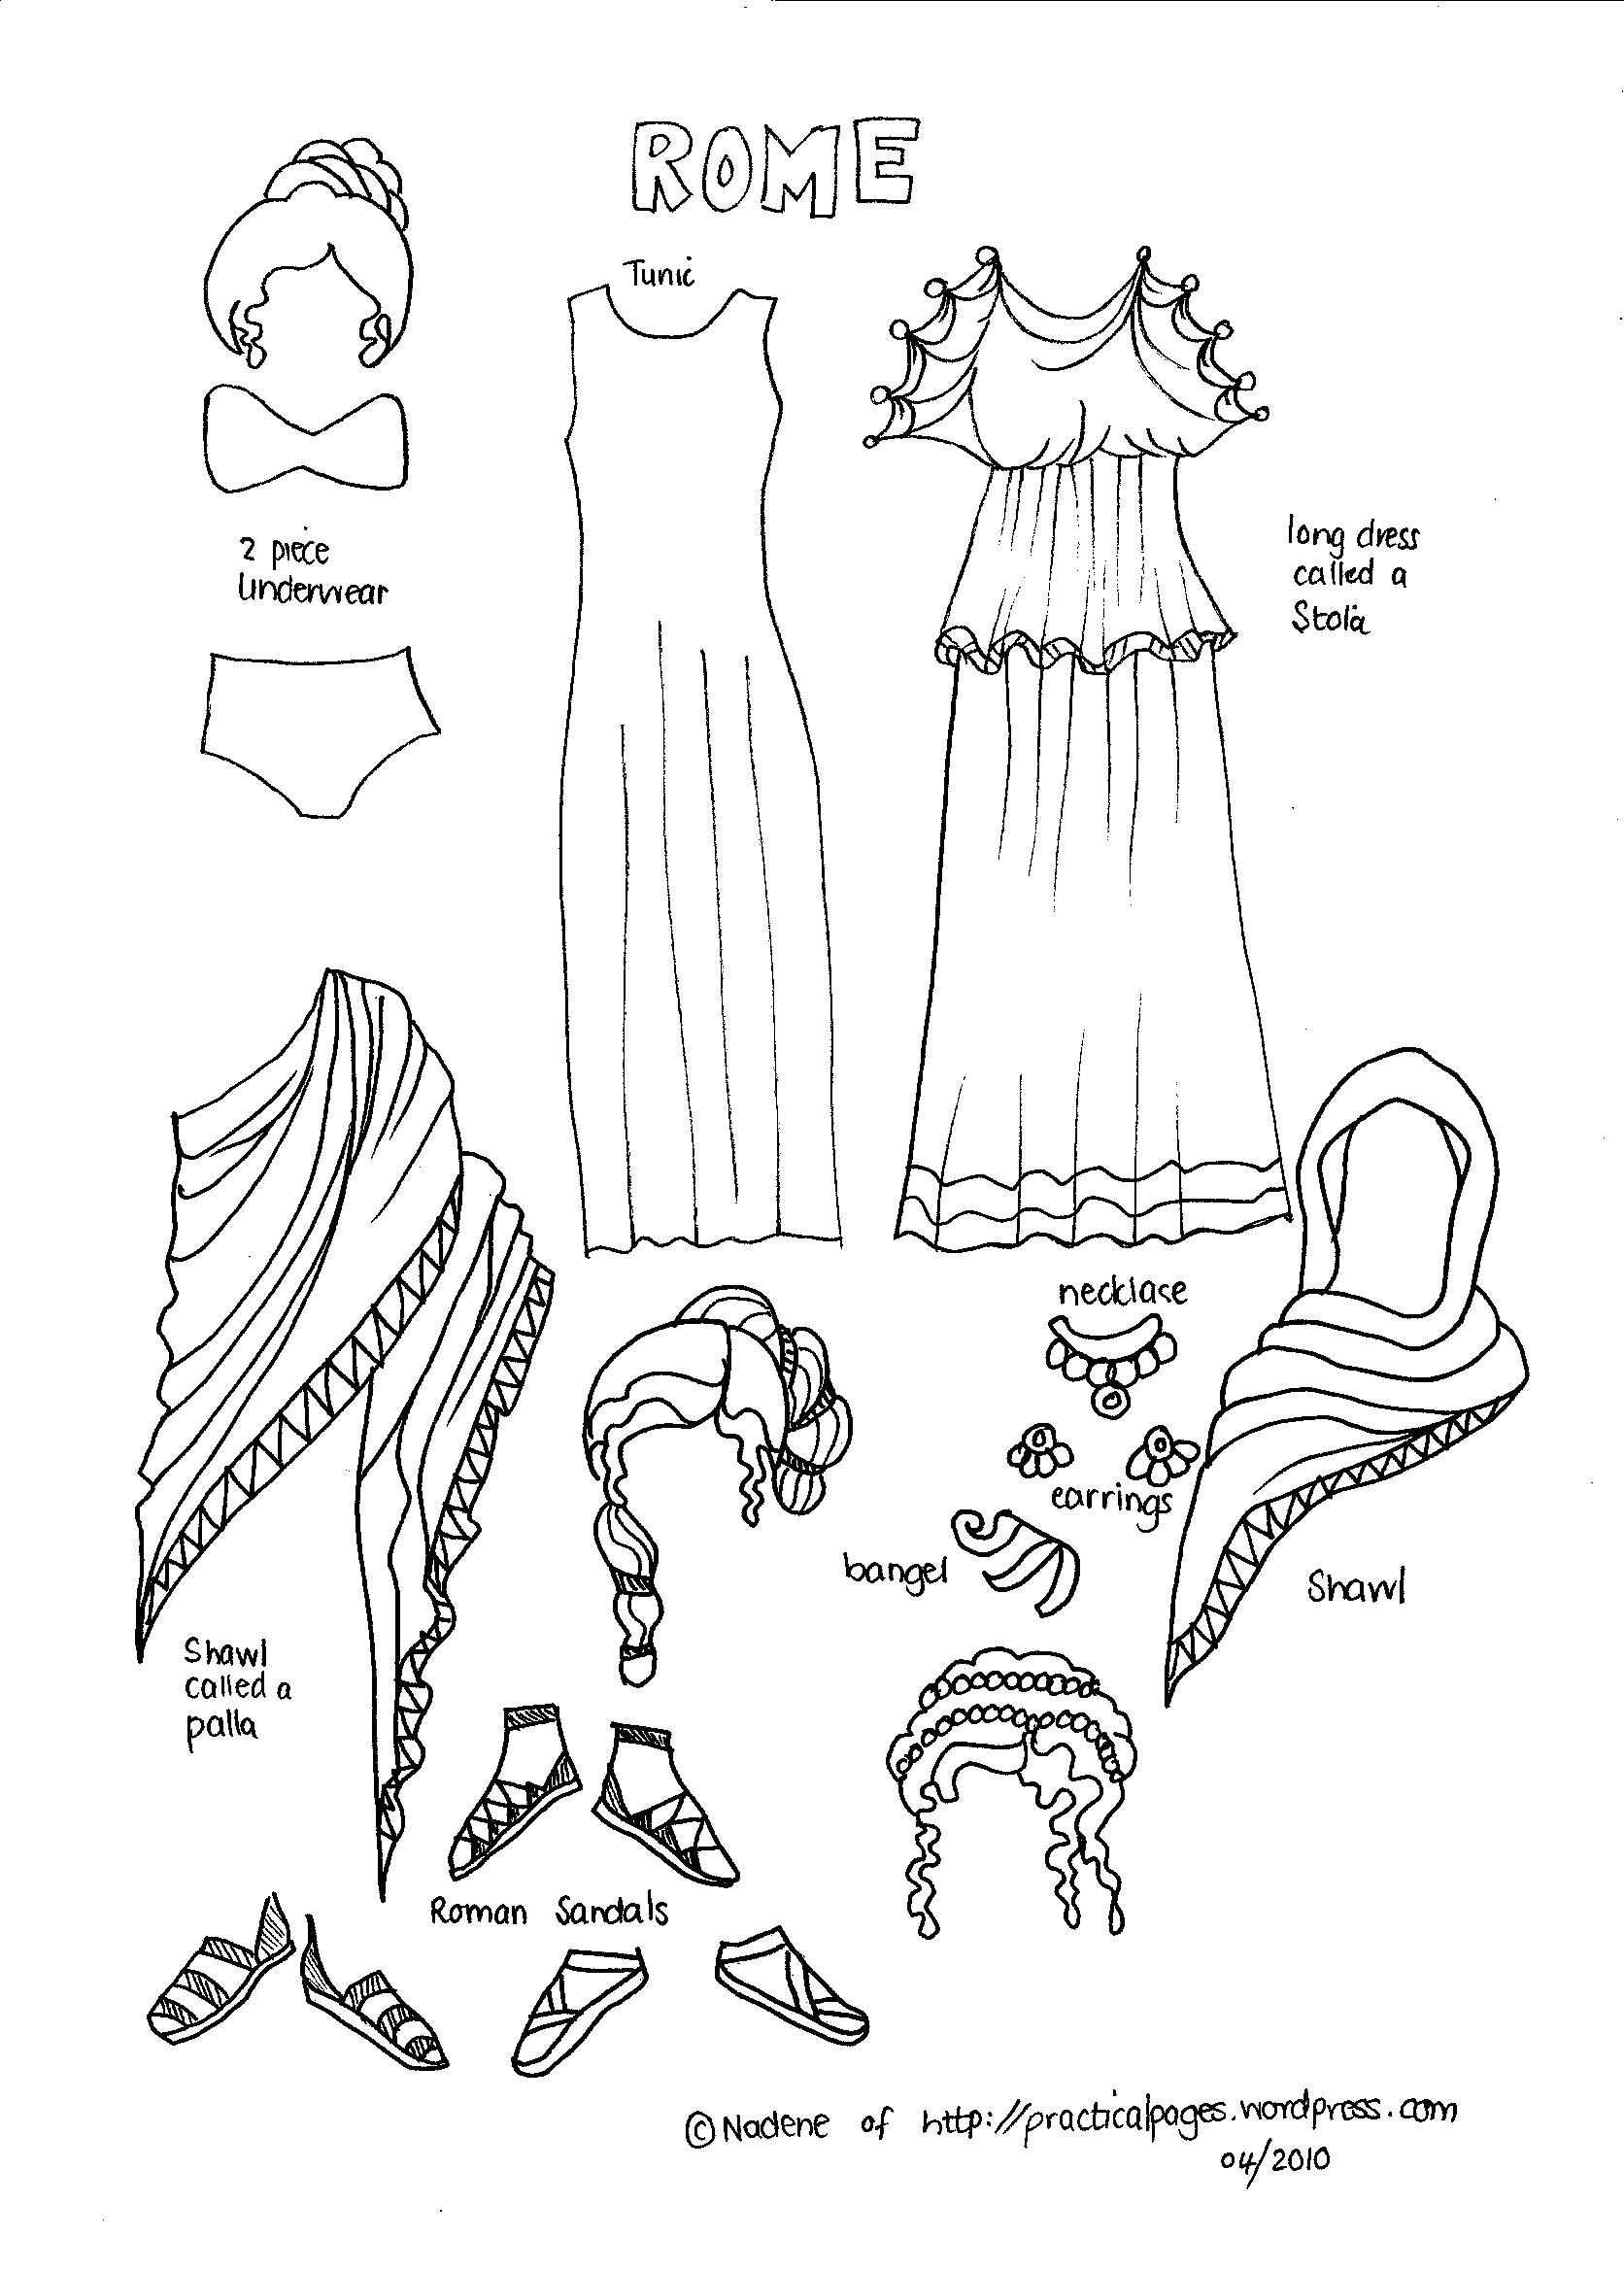 worksheet Ancient Rome Worksheets paper dolls of ancient history rome and nice to see some illustrations women the time